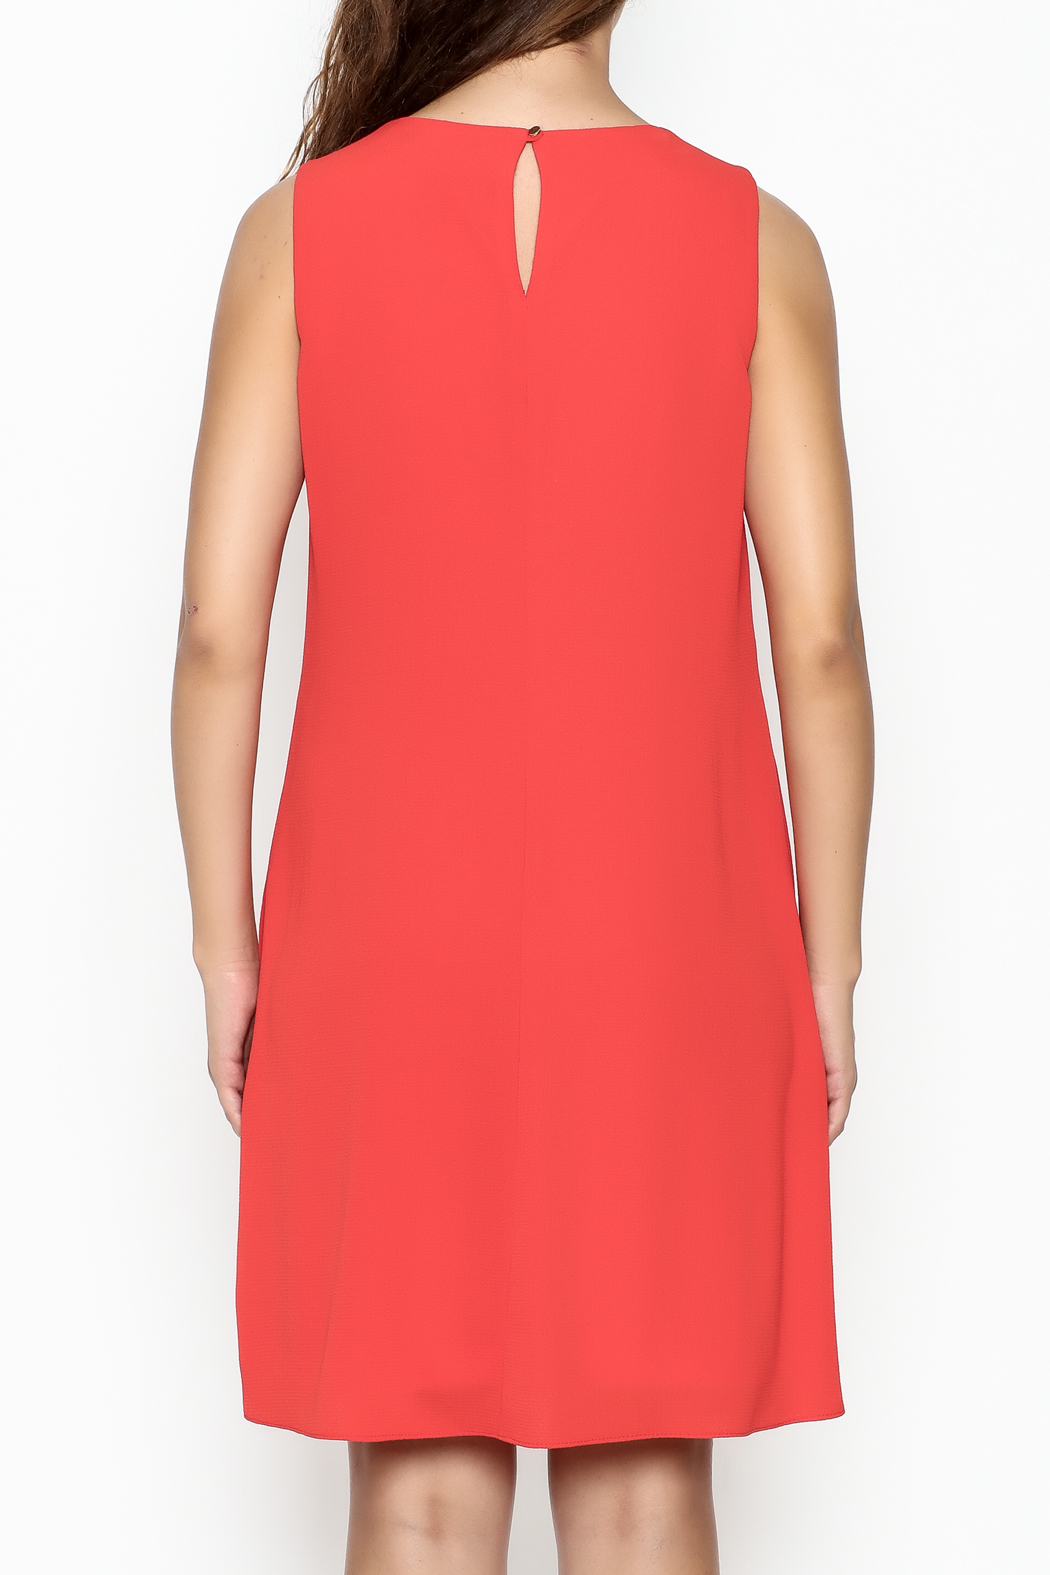 Frank Lyman Coral Shift Dress - Back Cropped Image